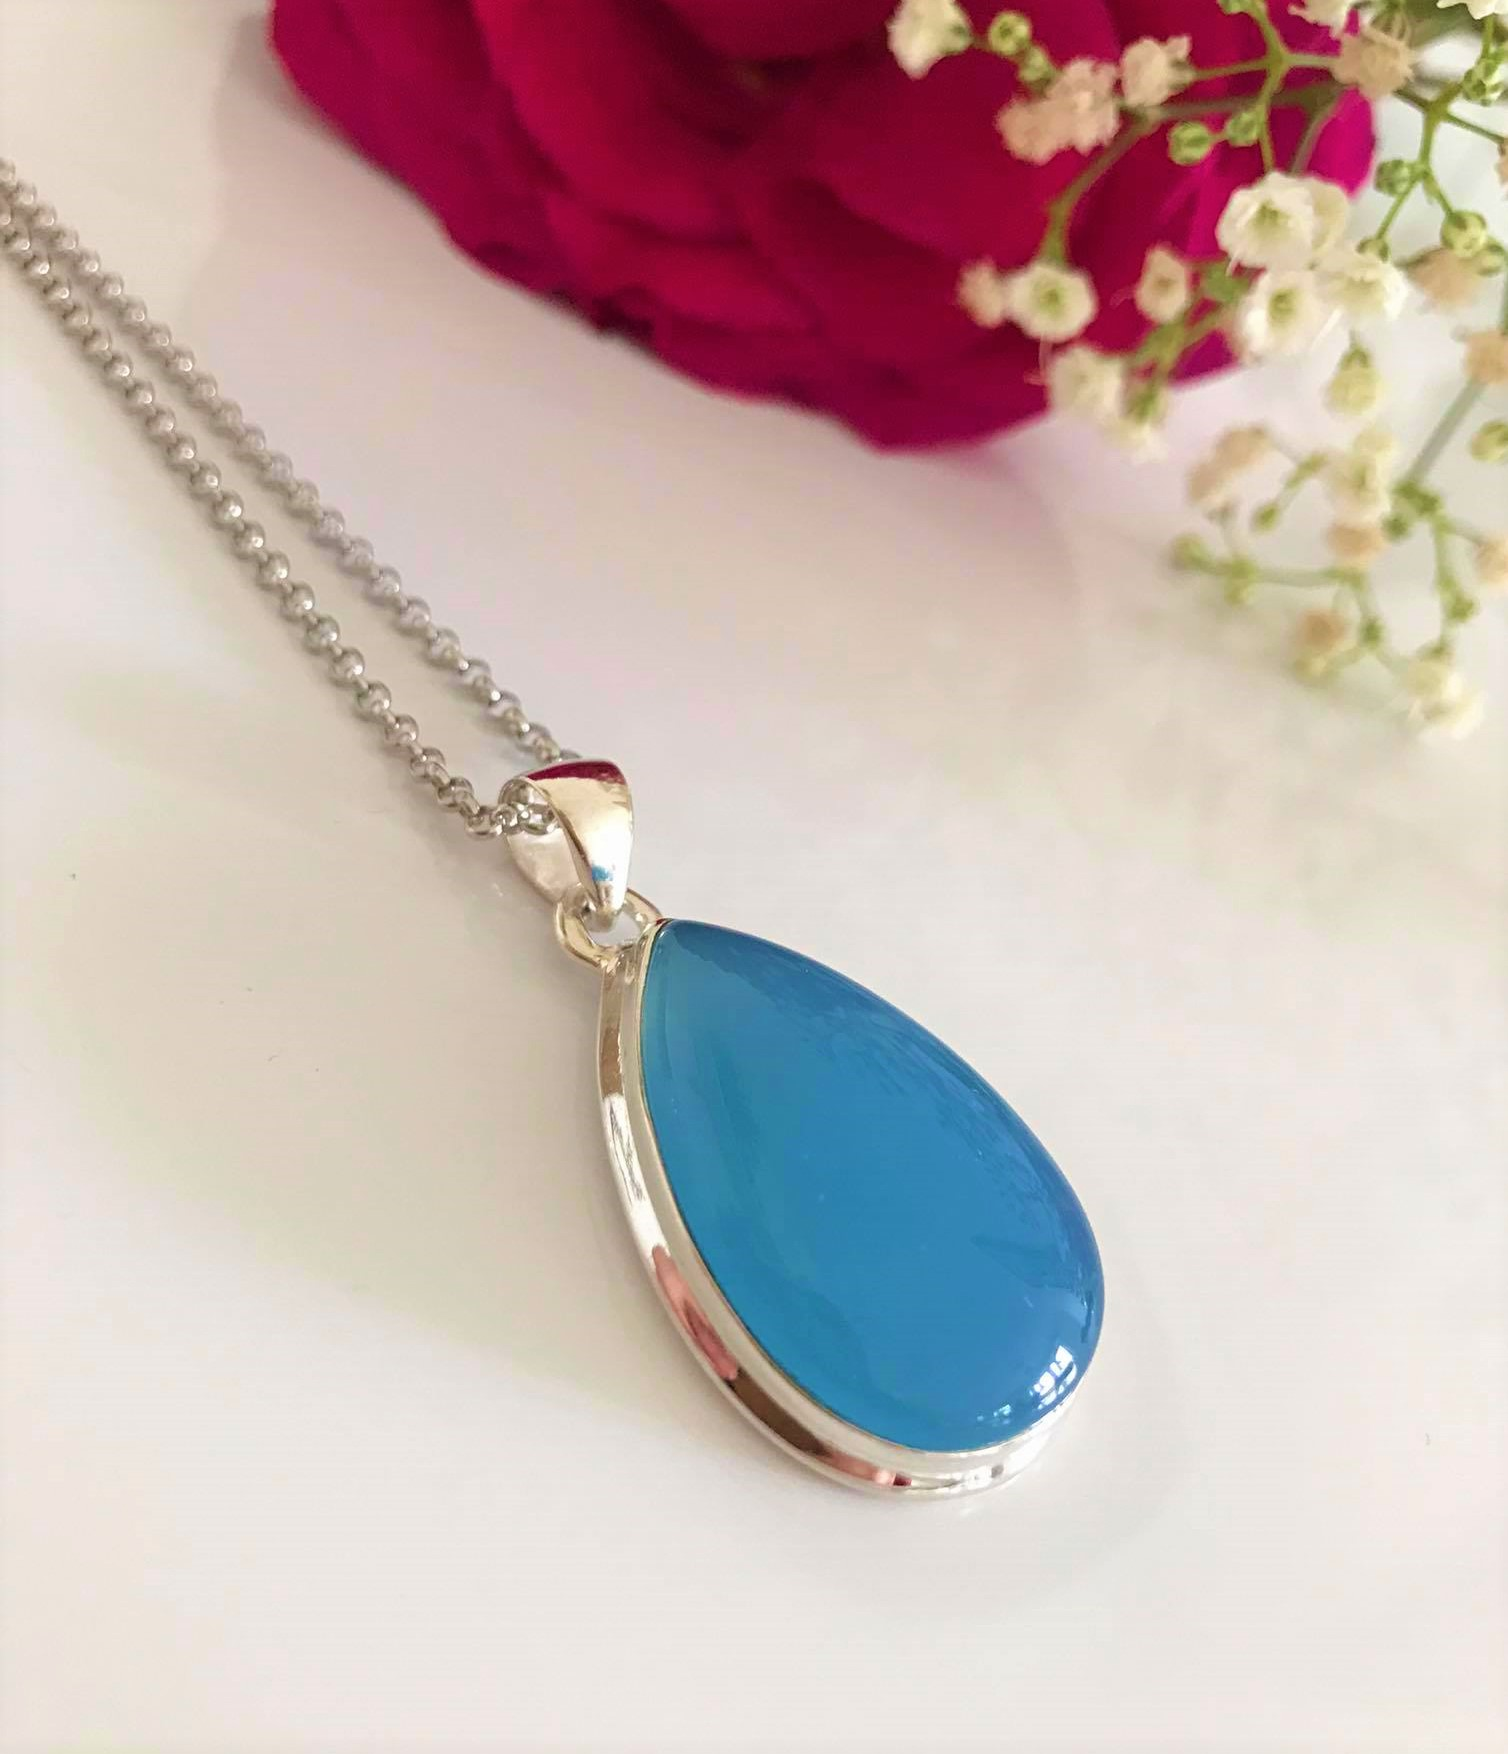 Lovely Teardrop Blue Chalcedony Sterling Silver Necklace  18 inch Chain. Image